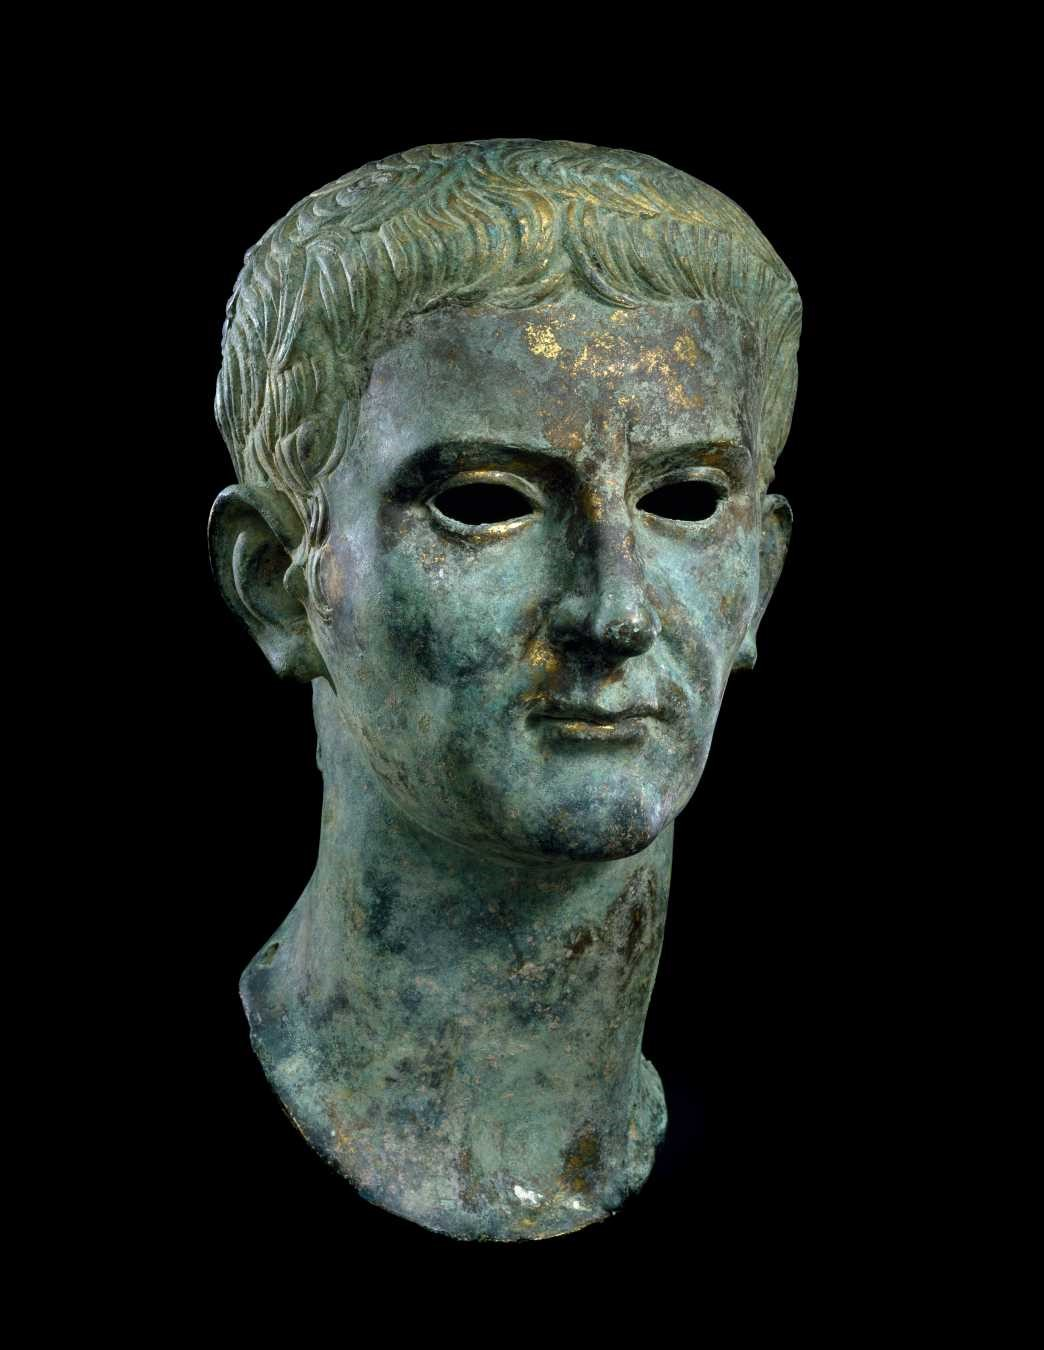 Roman, Imperial Portrait of the Emperor Caligula, God and Ruler, 37–41 AD